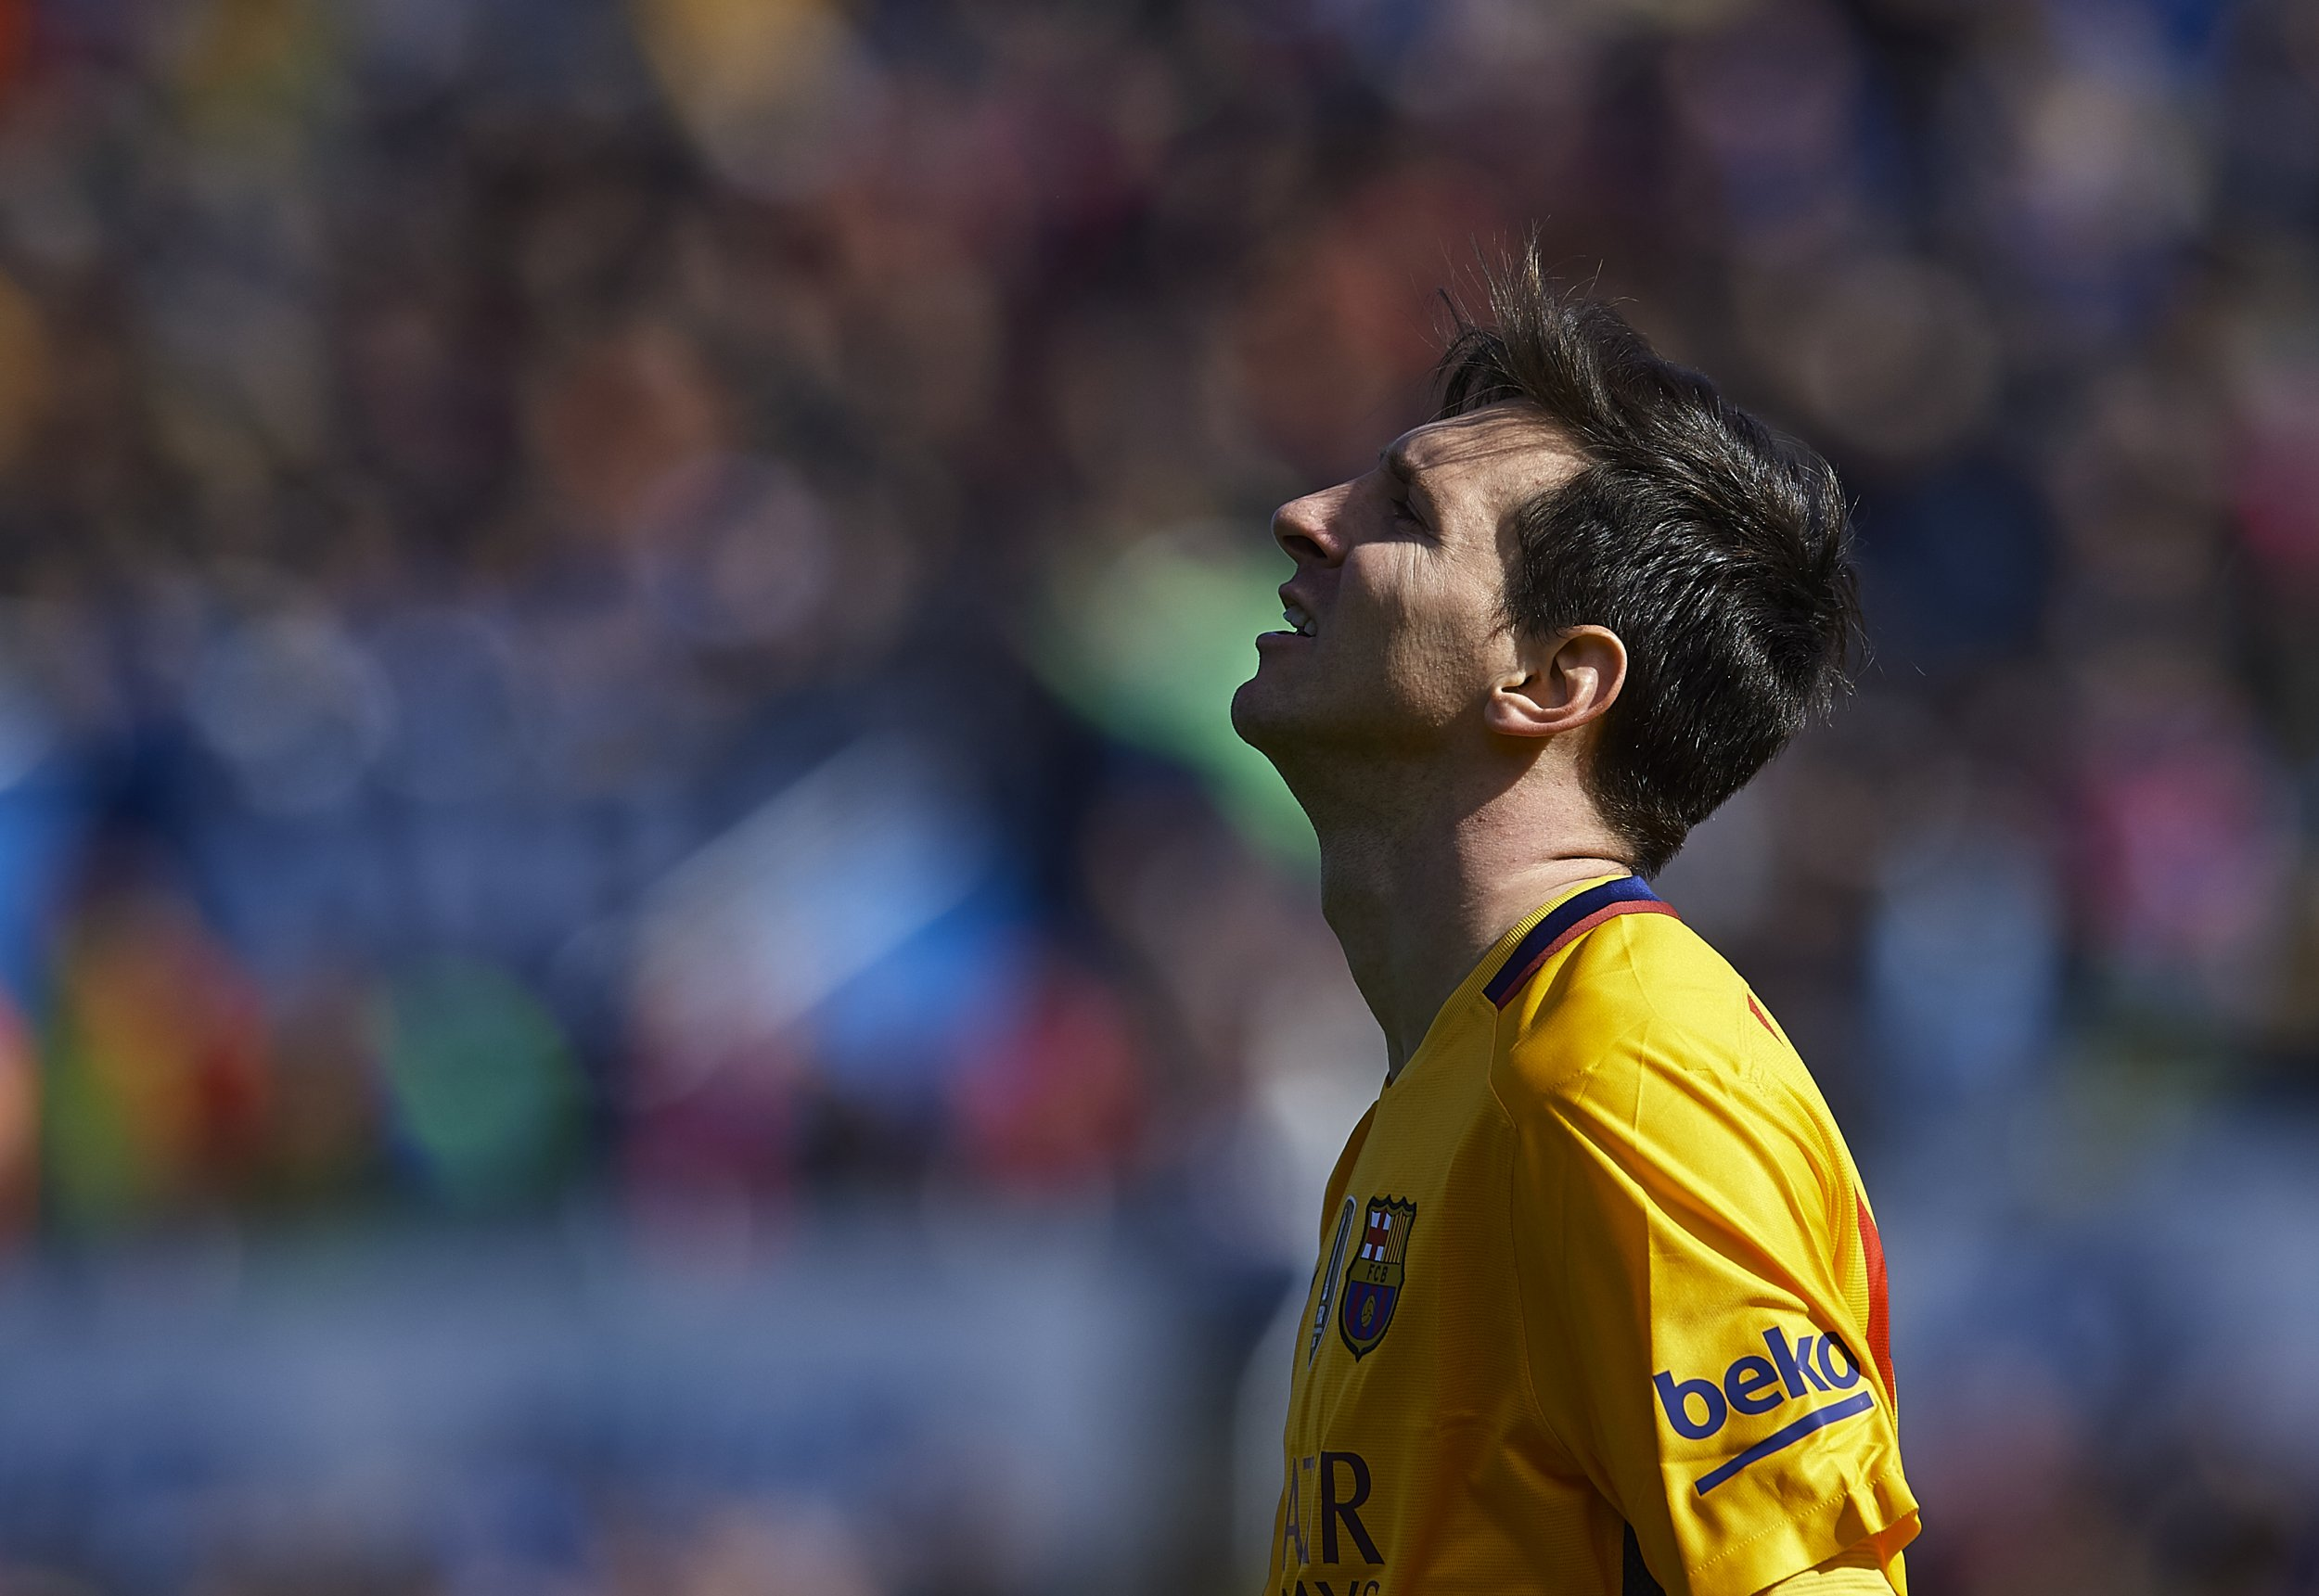 Lionel Messi will miss Barcelona training with kidney stones.